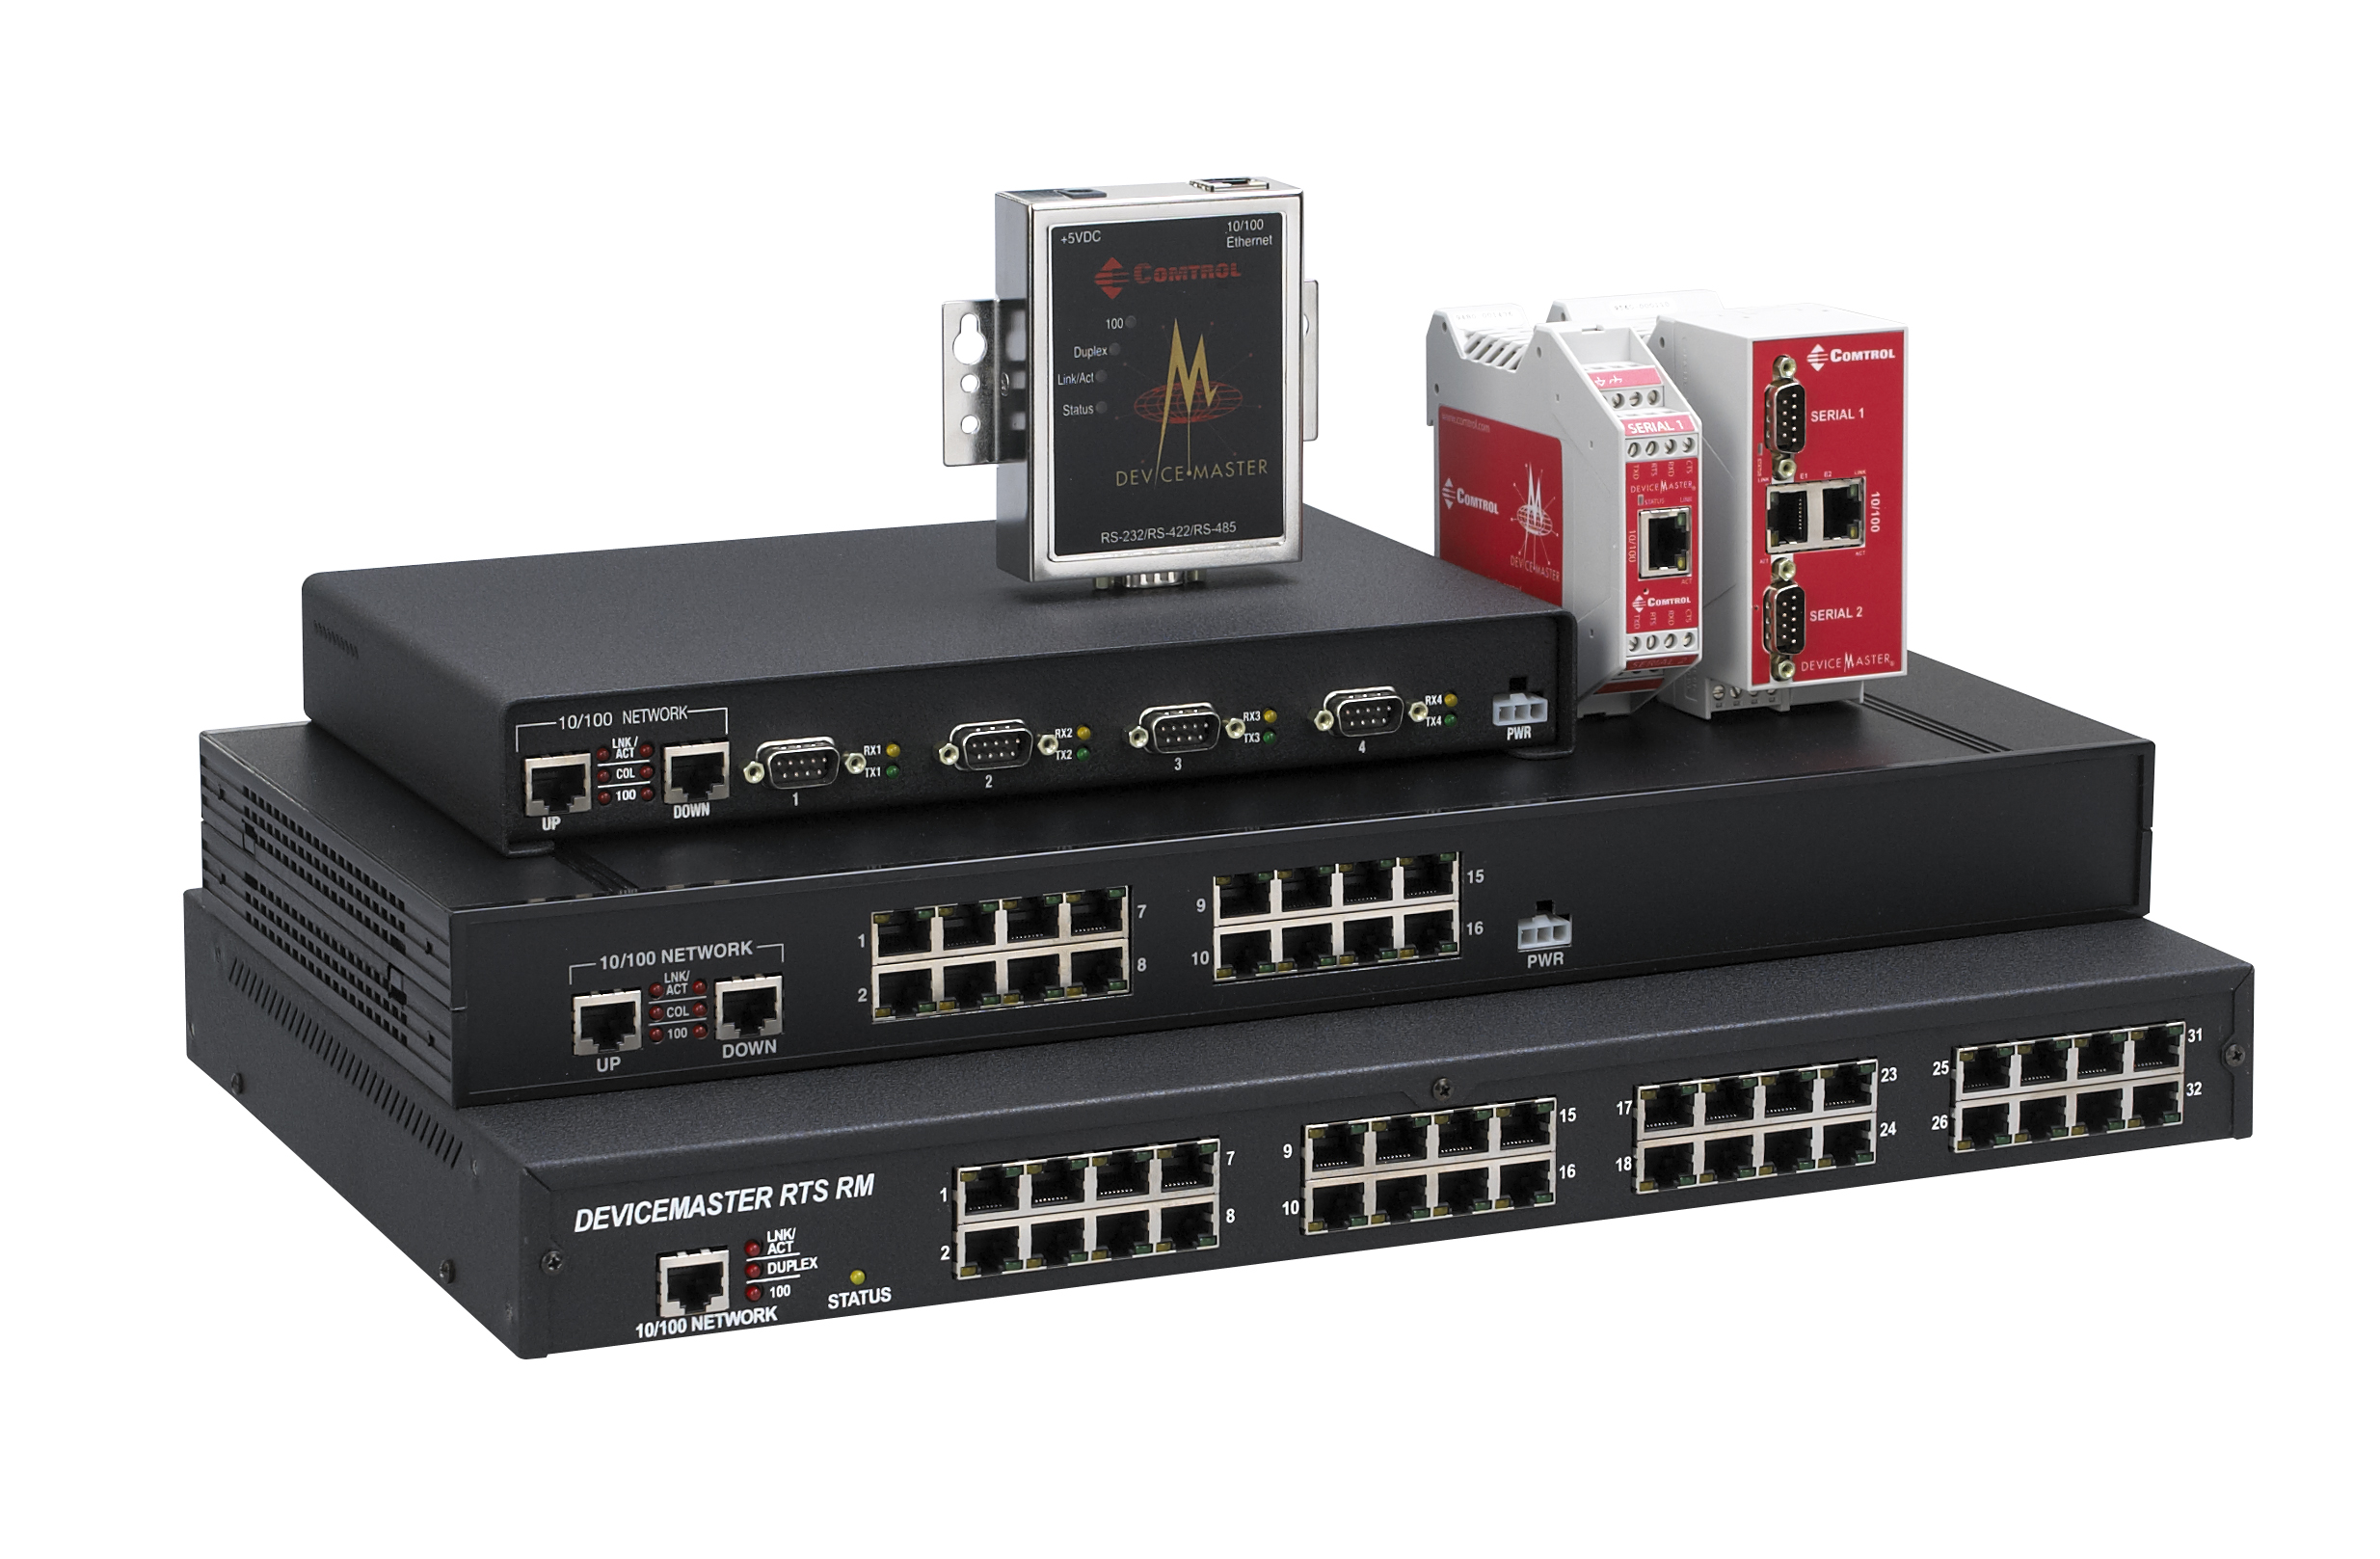 PortVision Plus DeviceMaster device servers